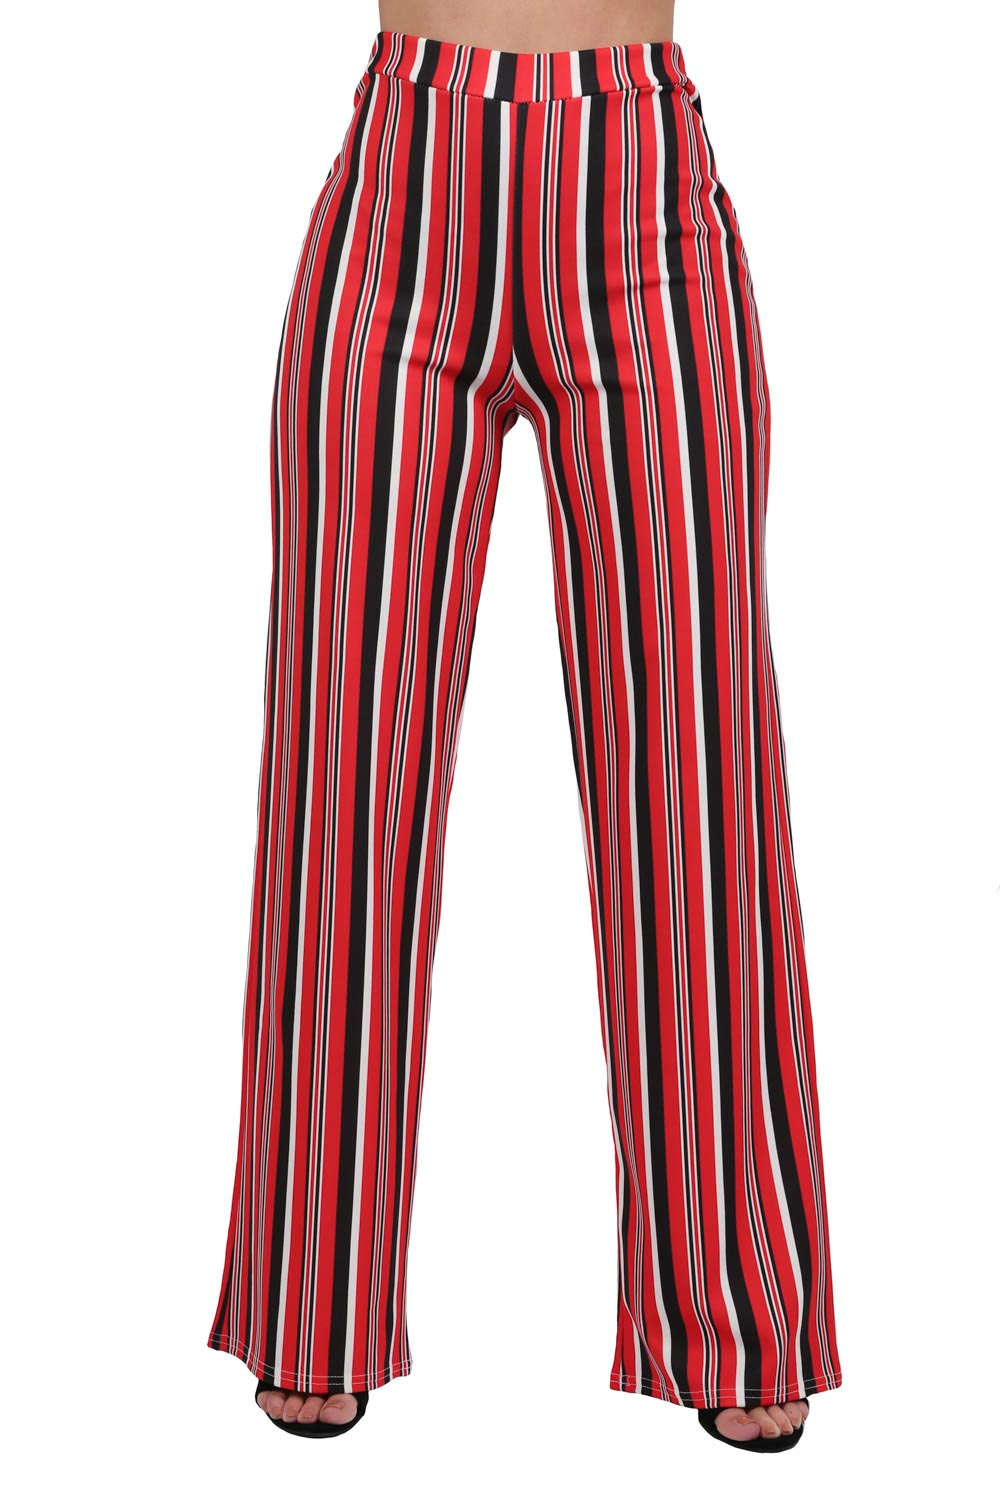 Multi Stripe High Waist Wide Leg Trousers in Red